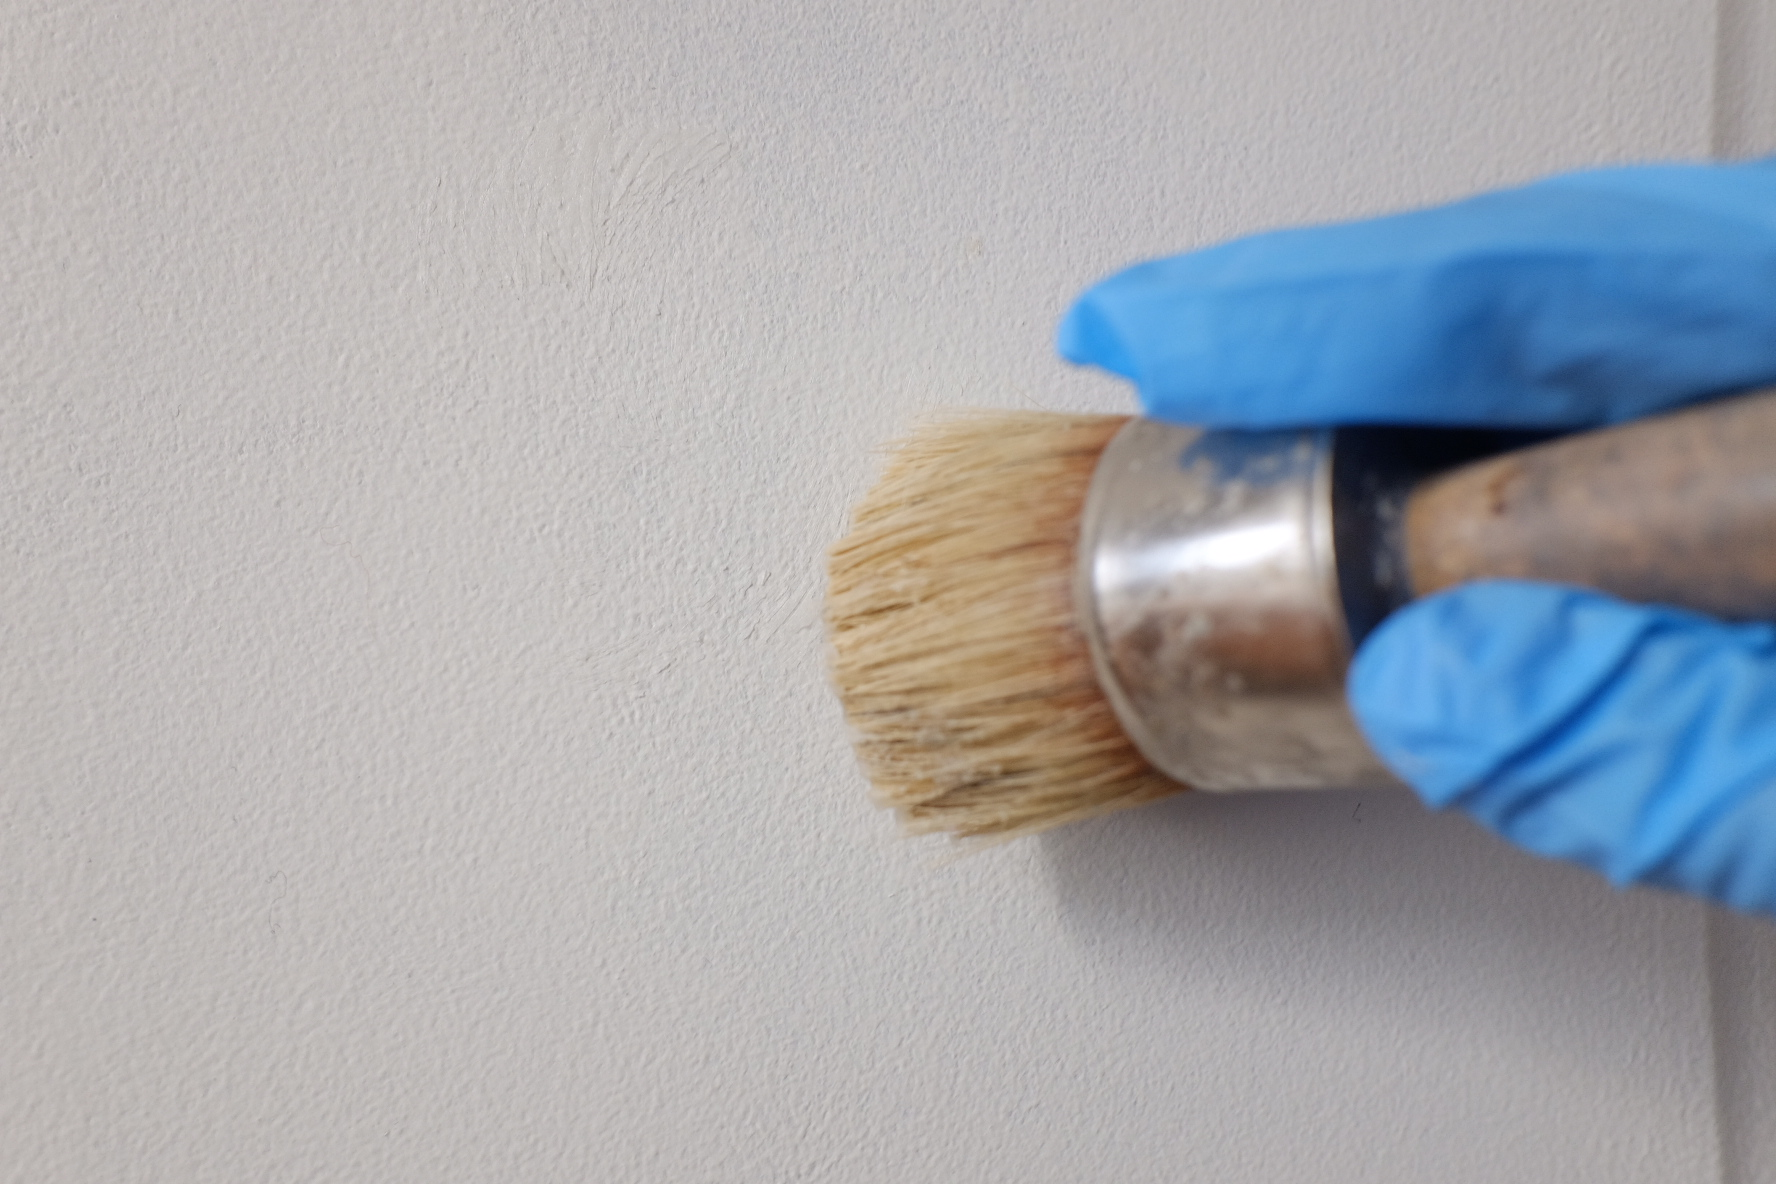 Use circular motions to apply the wax into the paint then buff with a lint free cloth.